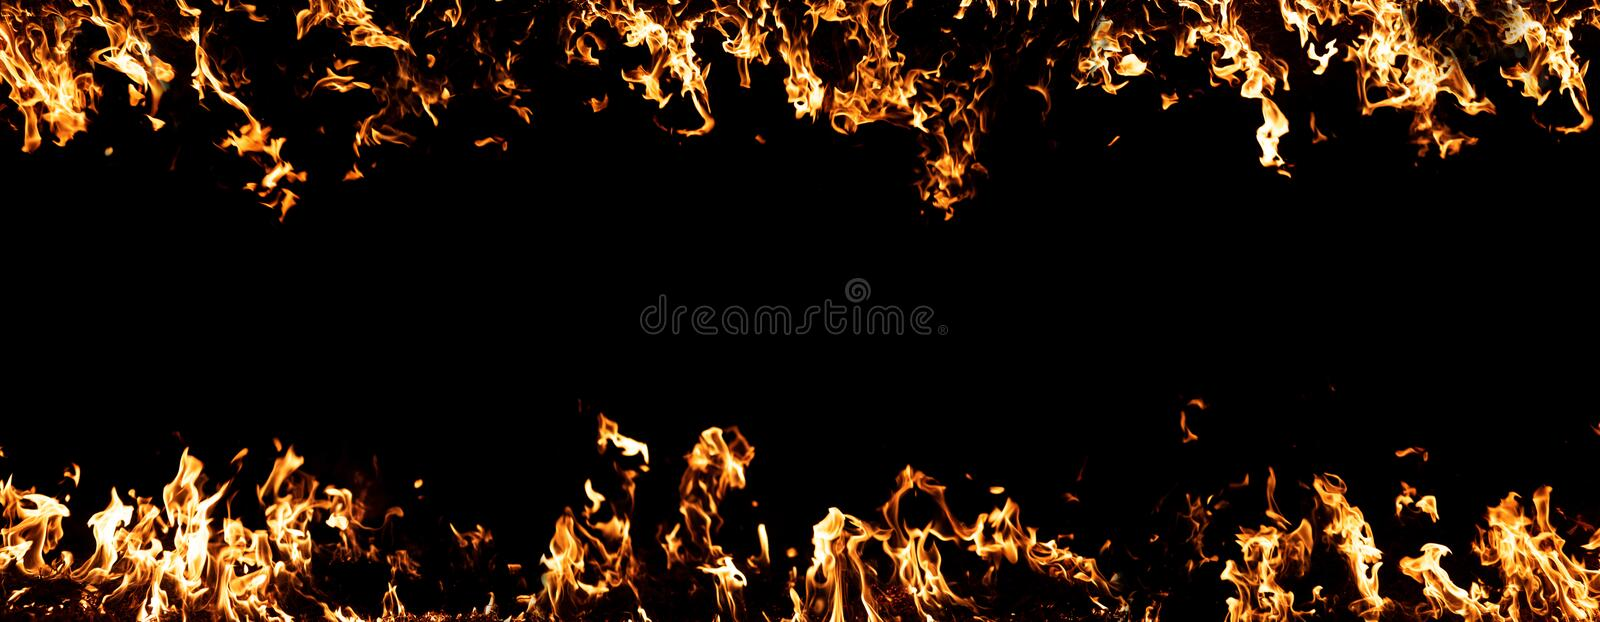 Fire on black background, abstract background with copy space in the center, banner format.  royalty free stock photography